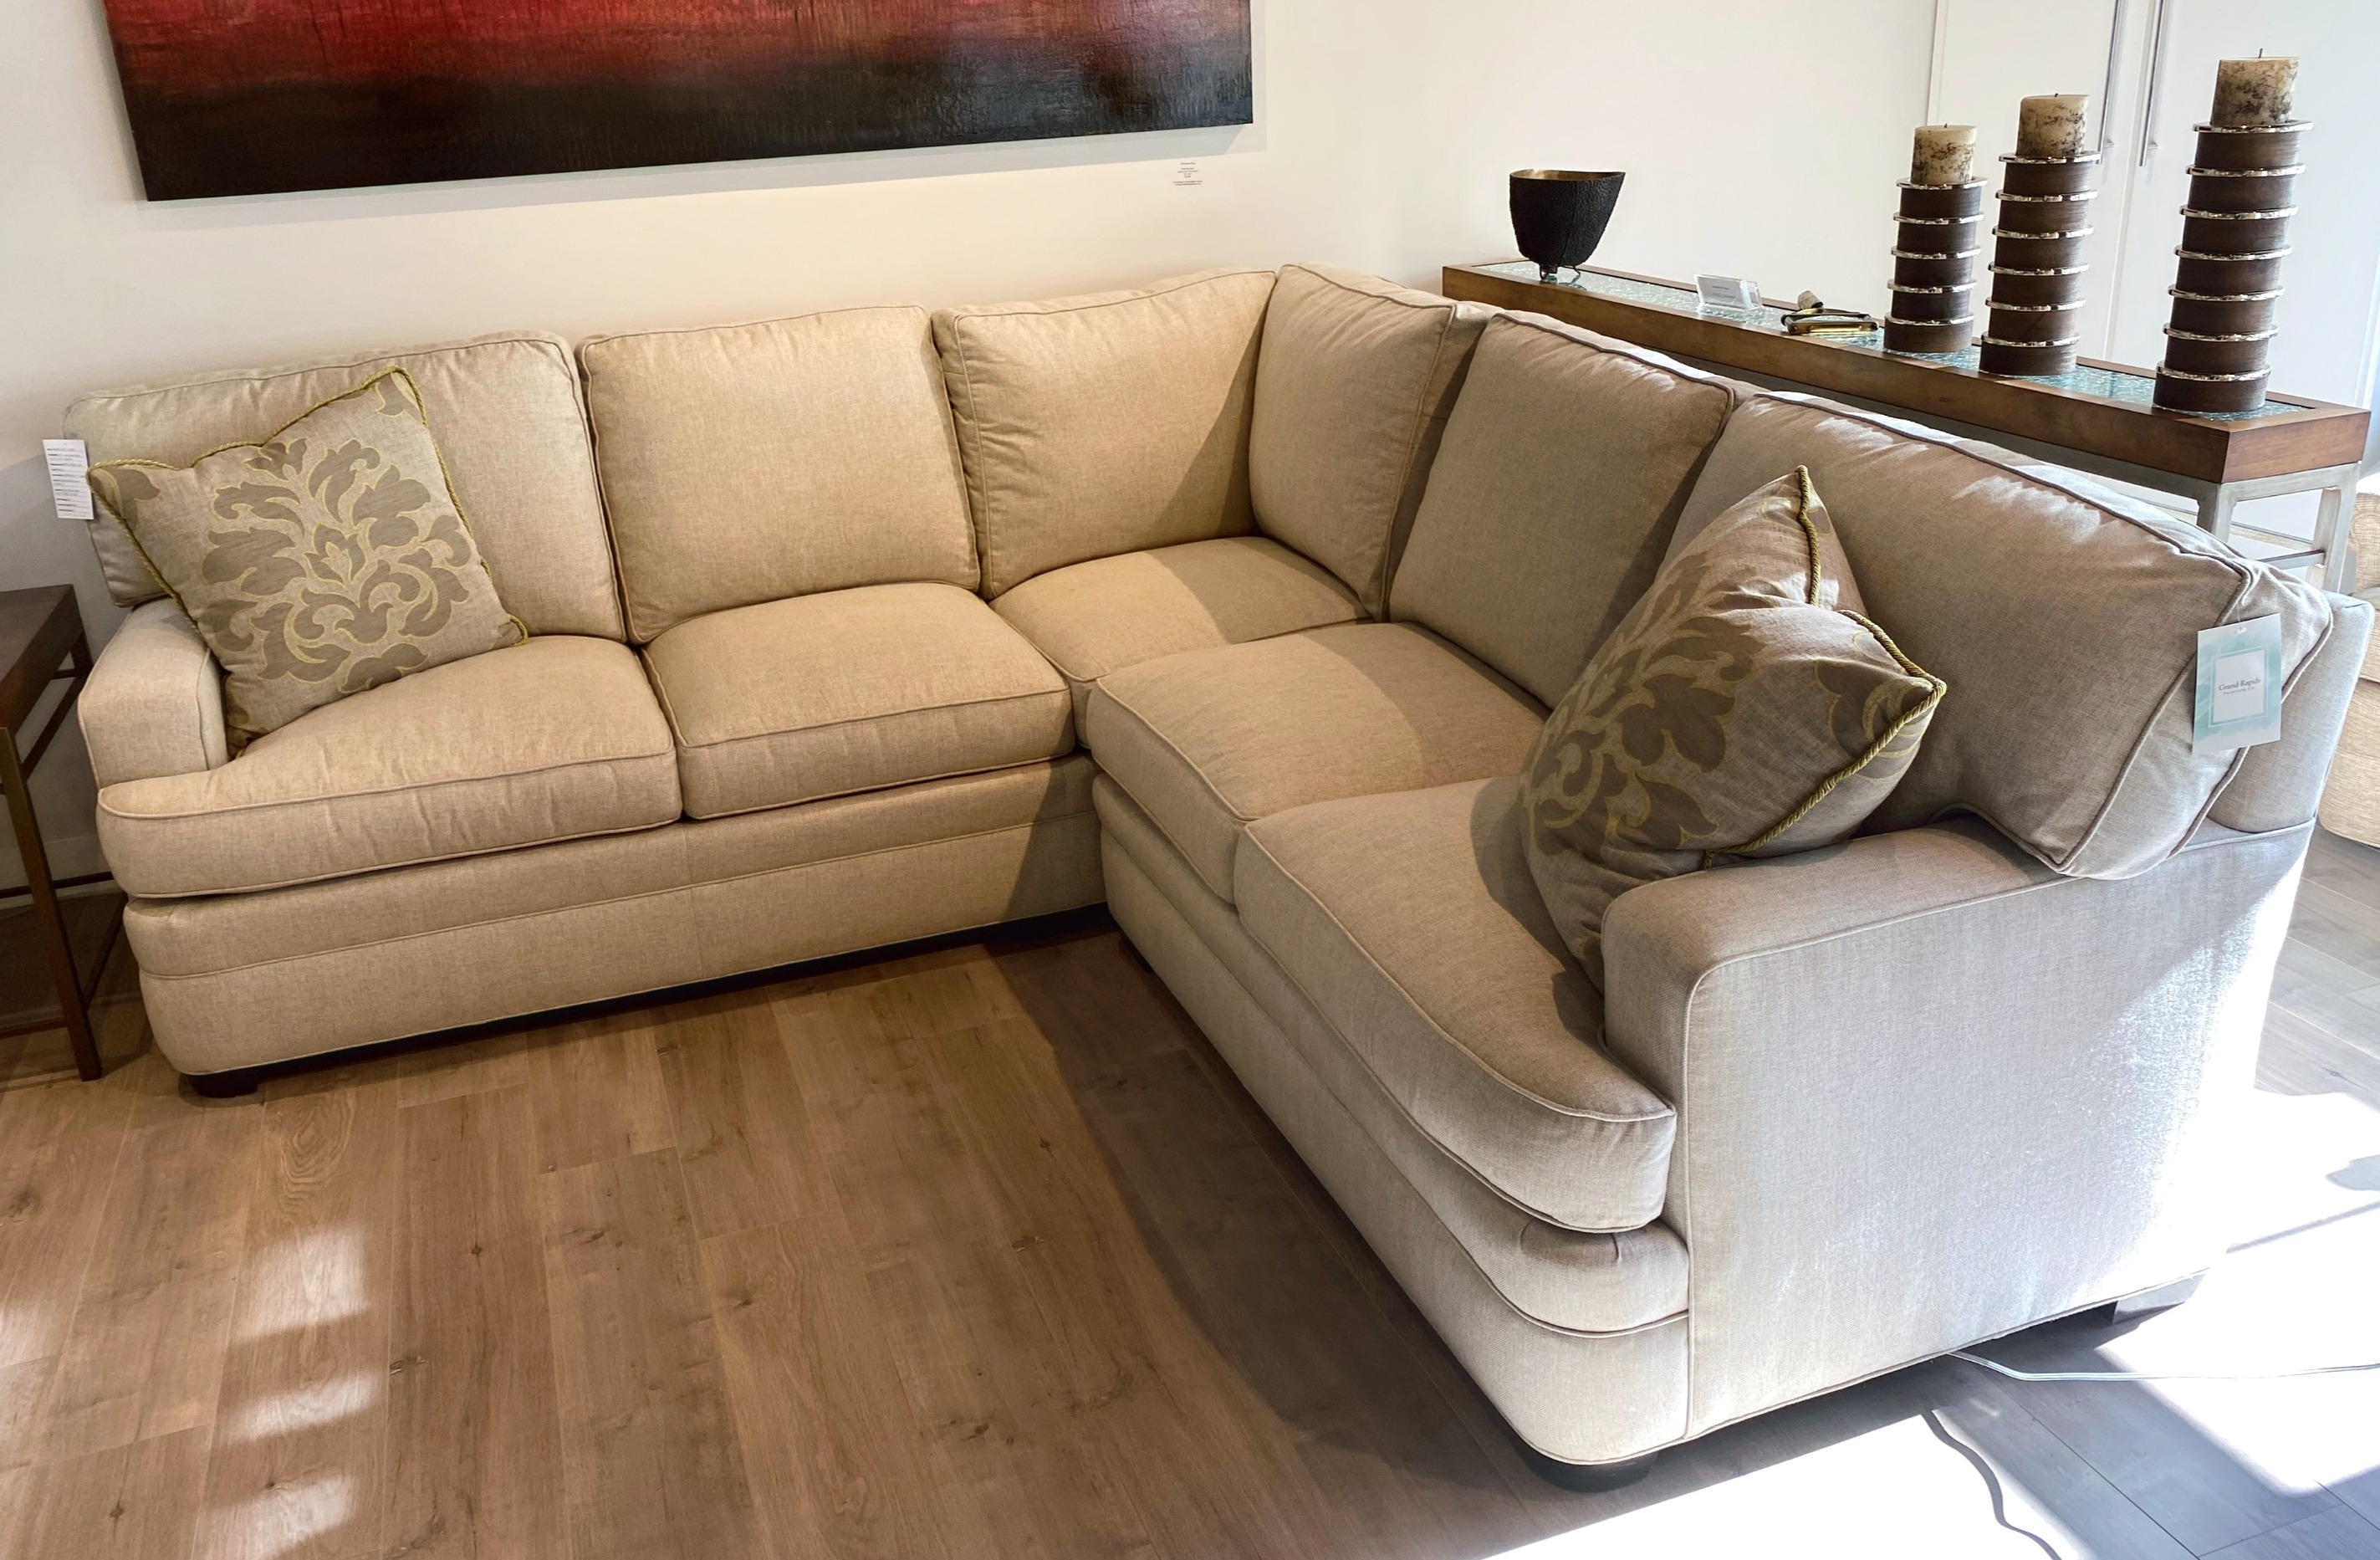 $4,000 - Sectional